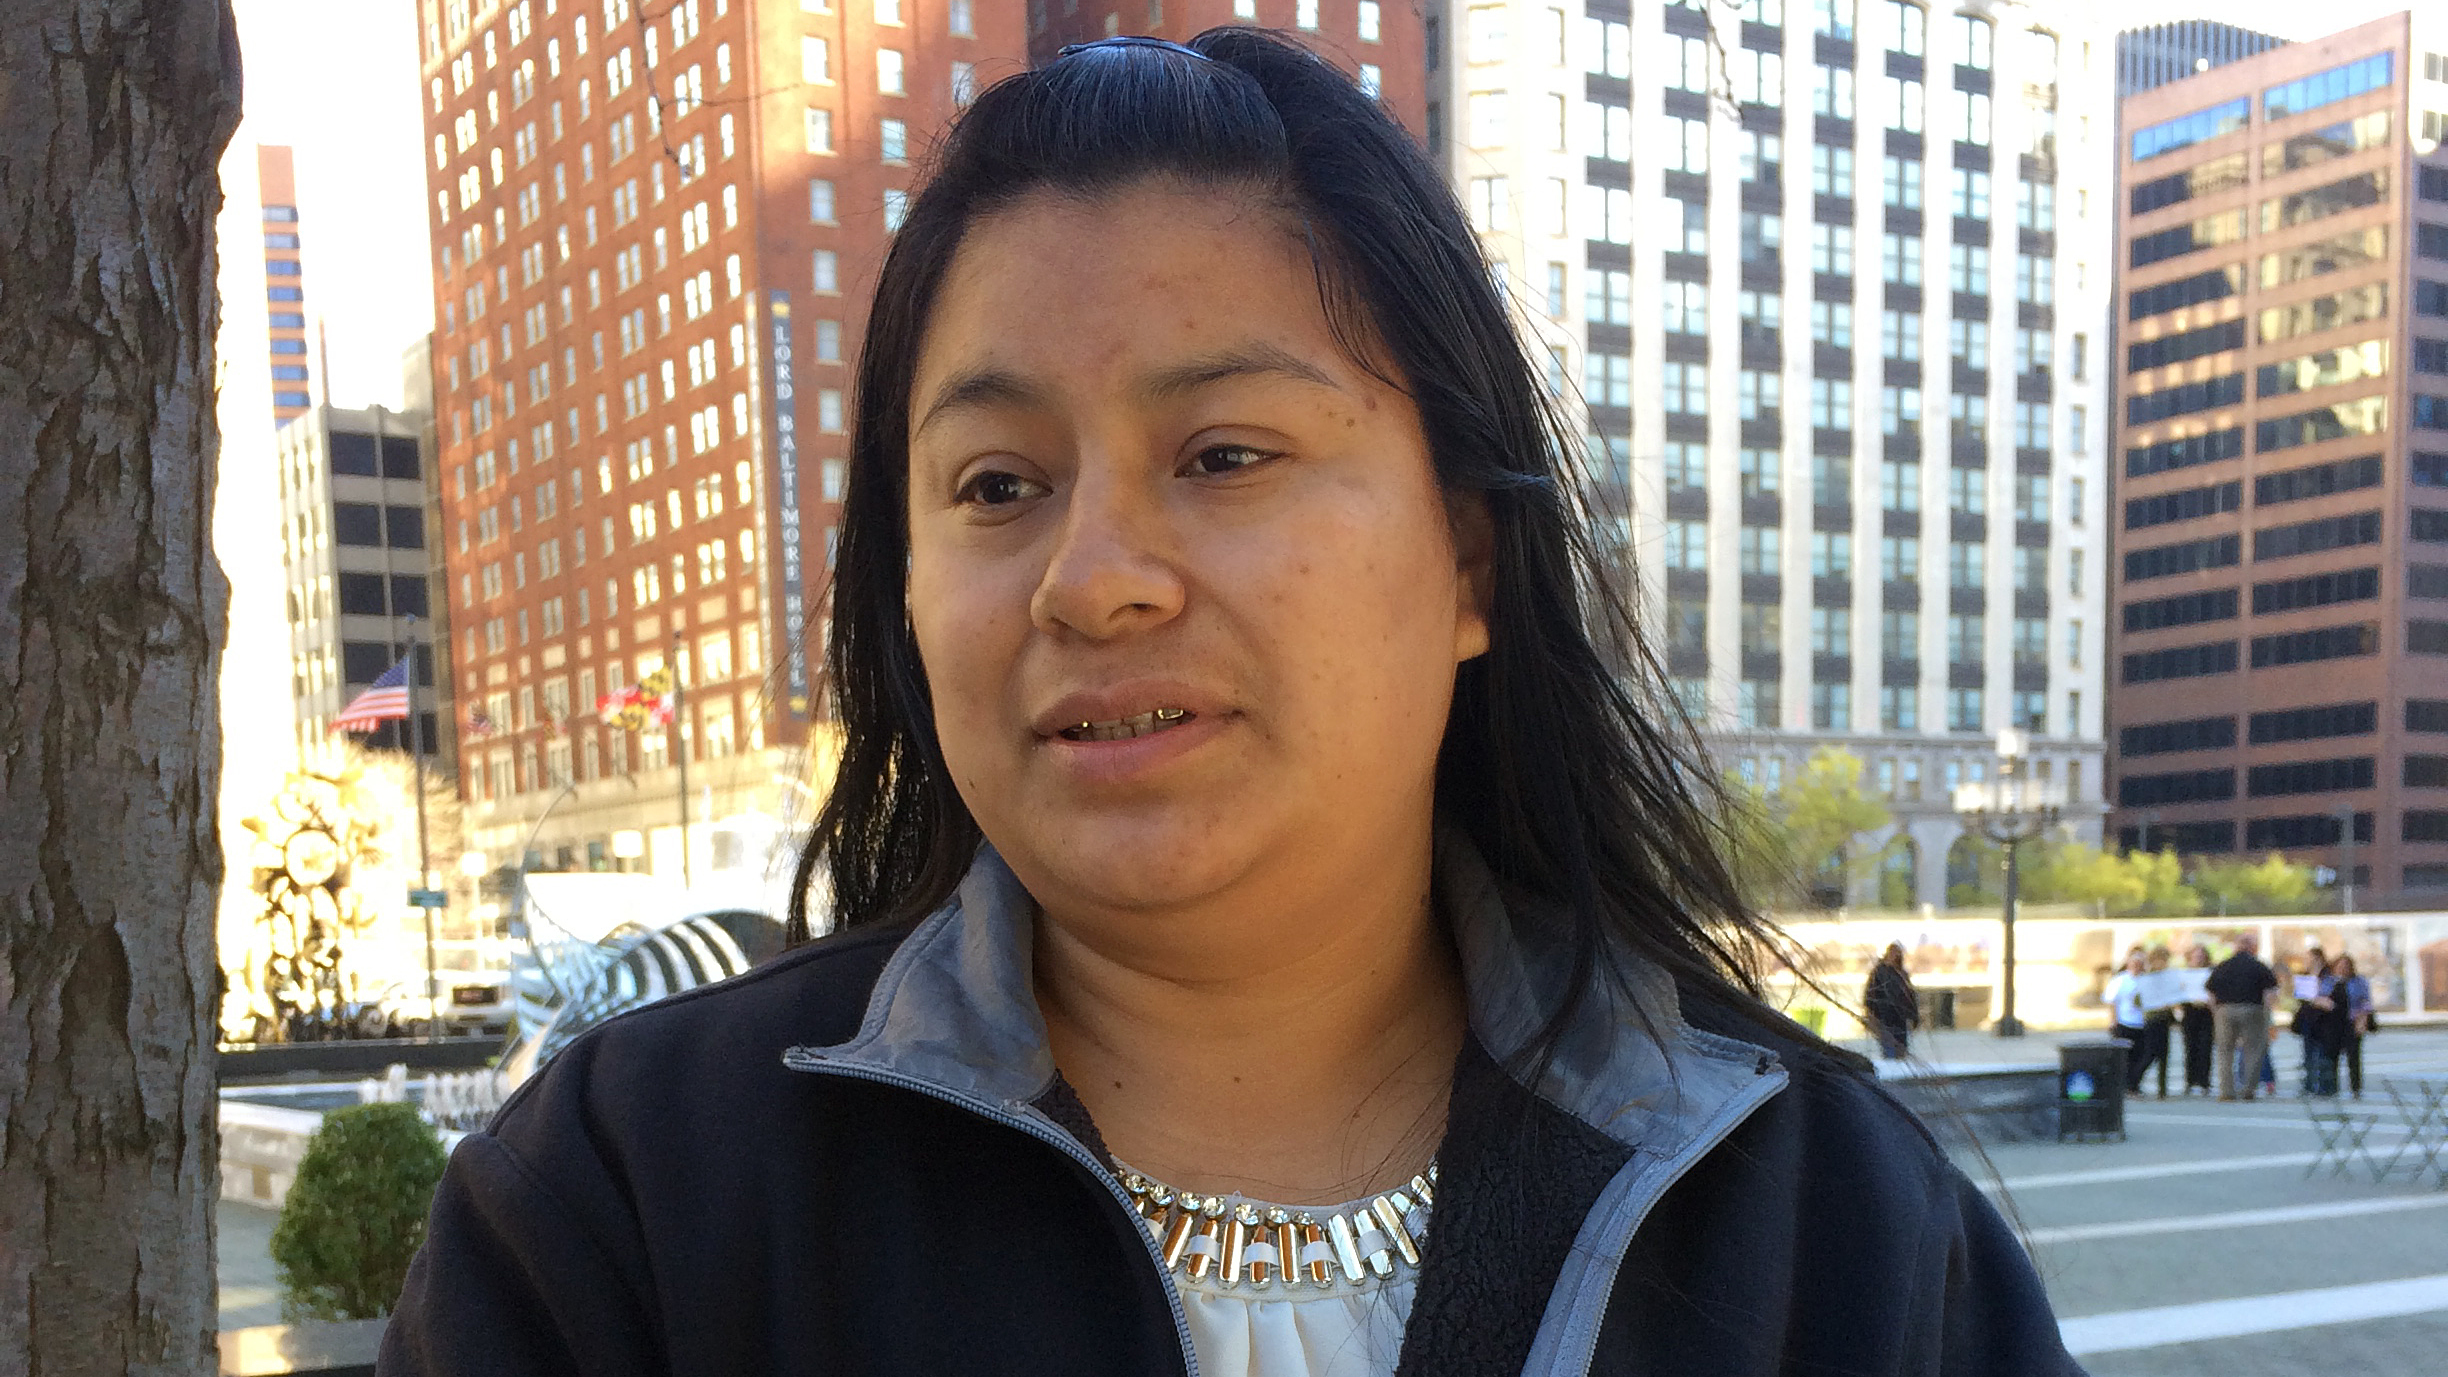 "Florinda Lorenzo came to the U.S. from Guatemala 14 years ago. She checks in ICE regularly — a requirement stemming from a 2010 arrest, though the charges were later dropped. She says the check-ins have become ""painful and stressful"" because she"